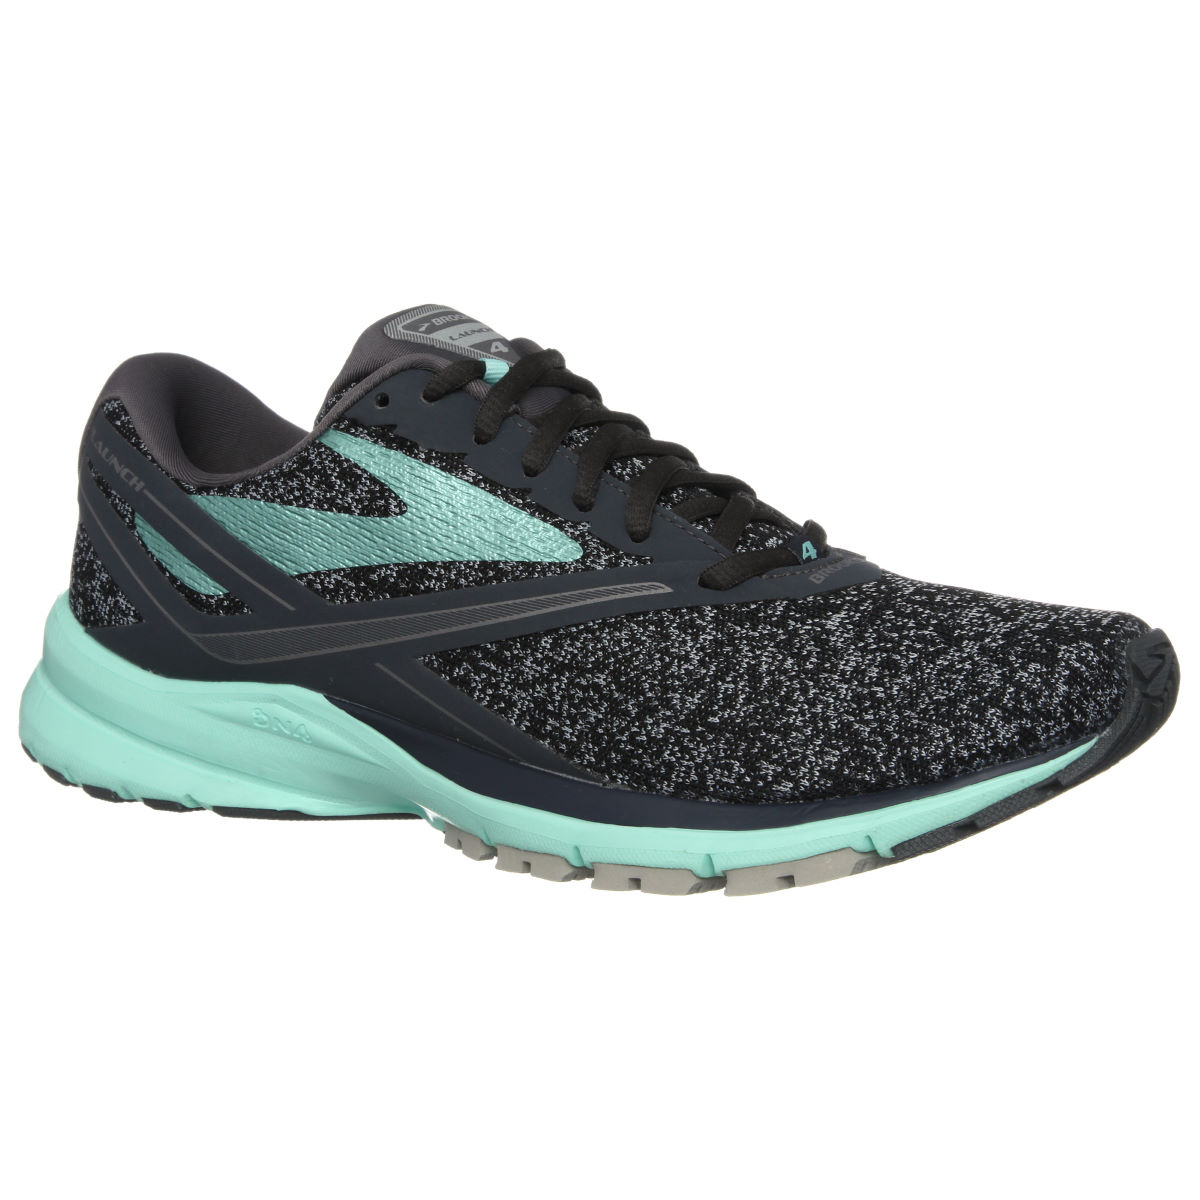 Brooks Women's Launch 4 Shoes - Zapatillas acolchadas